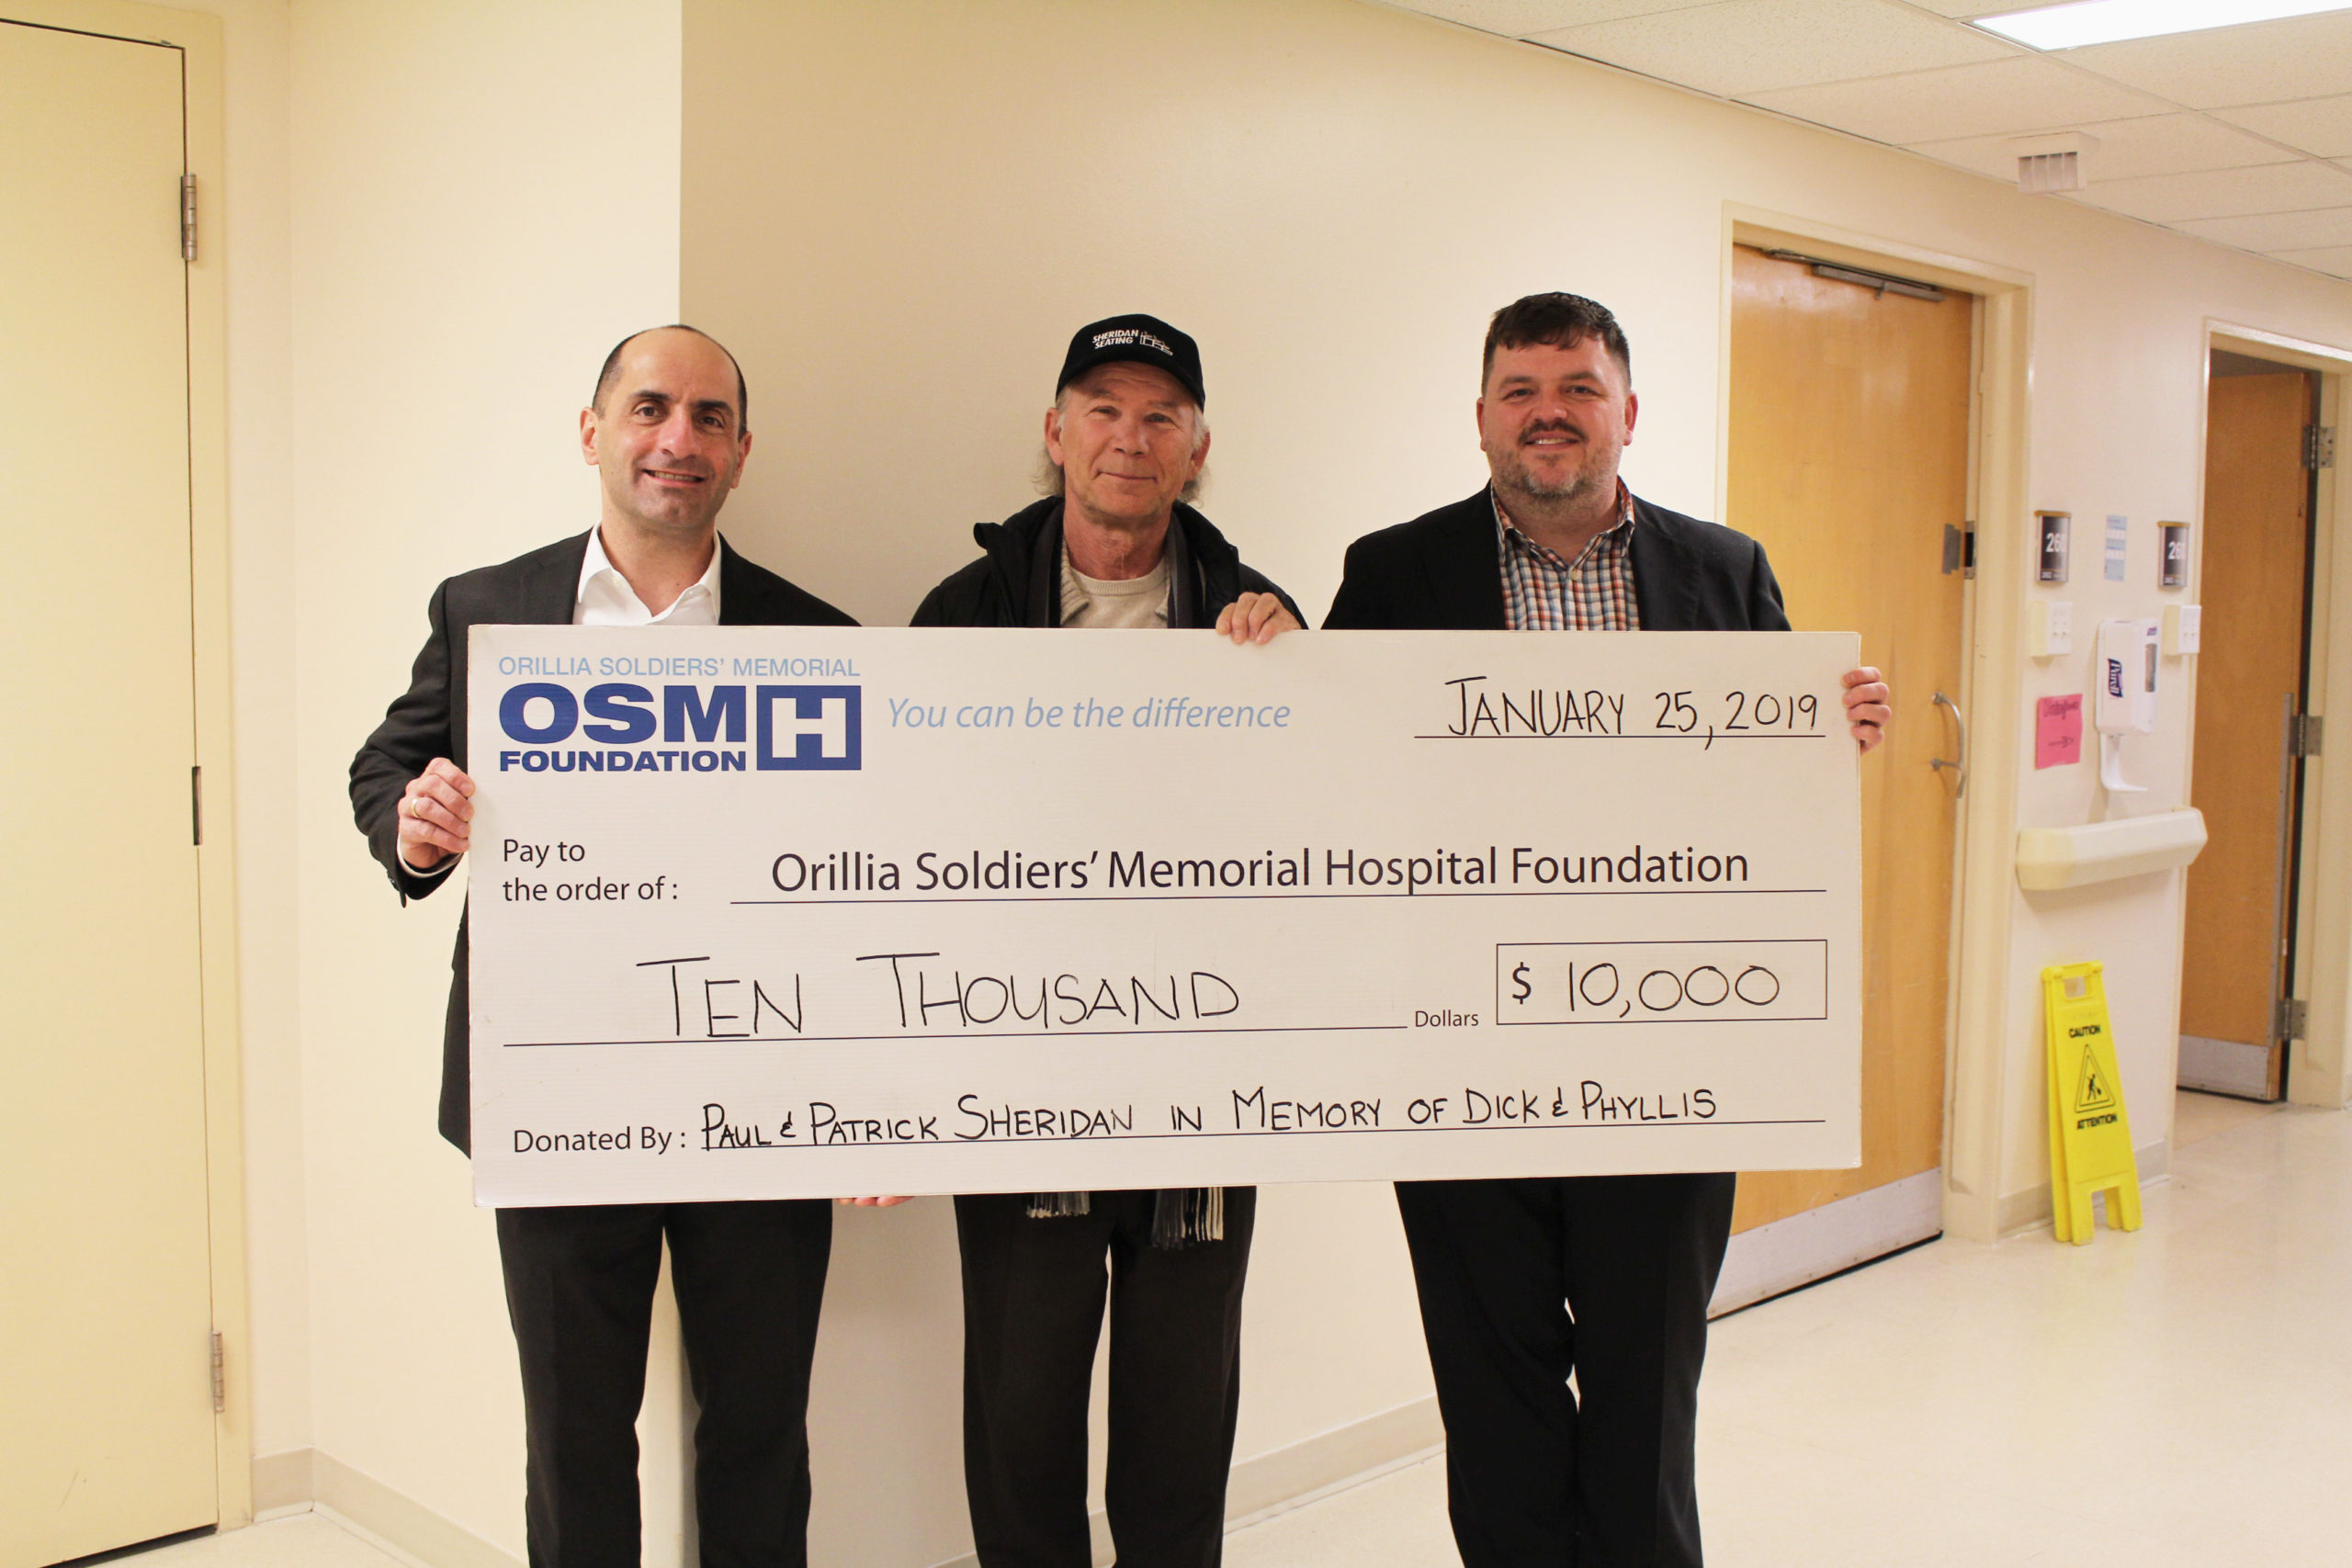 The Sheridan Family Makes a Donation to OSMH